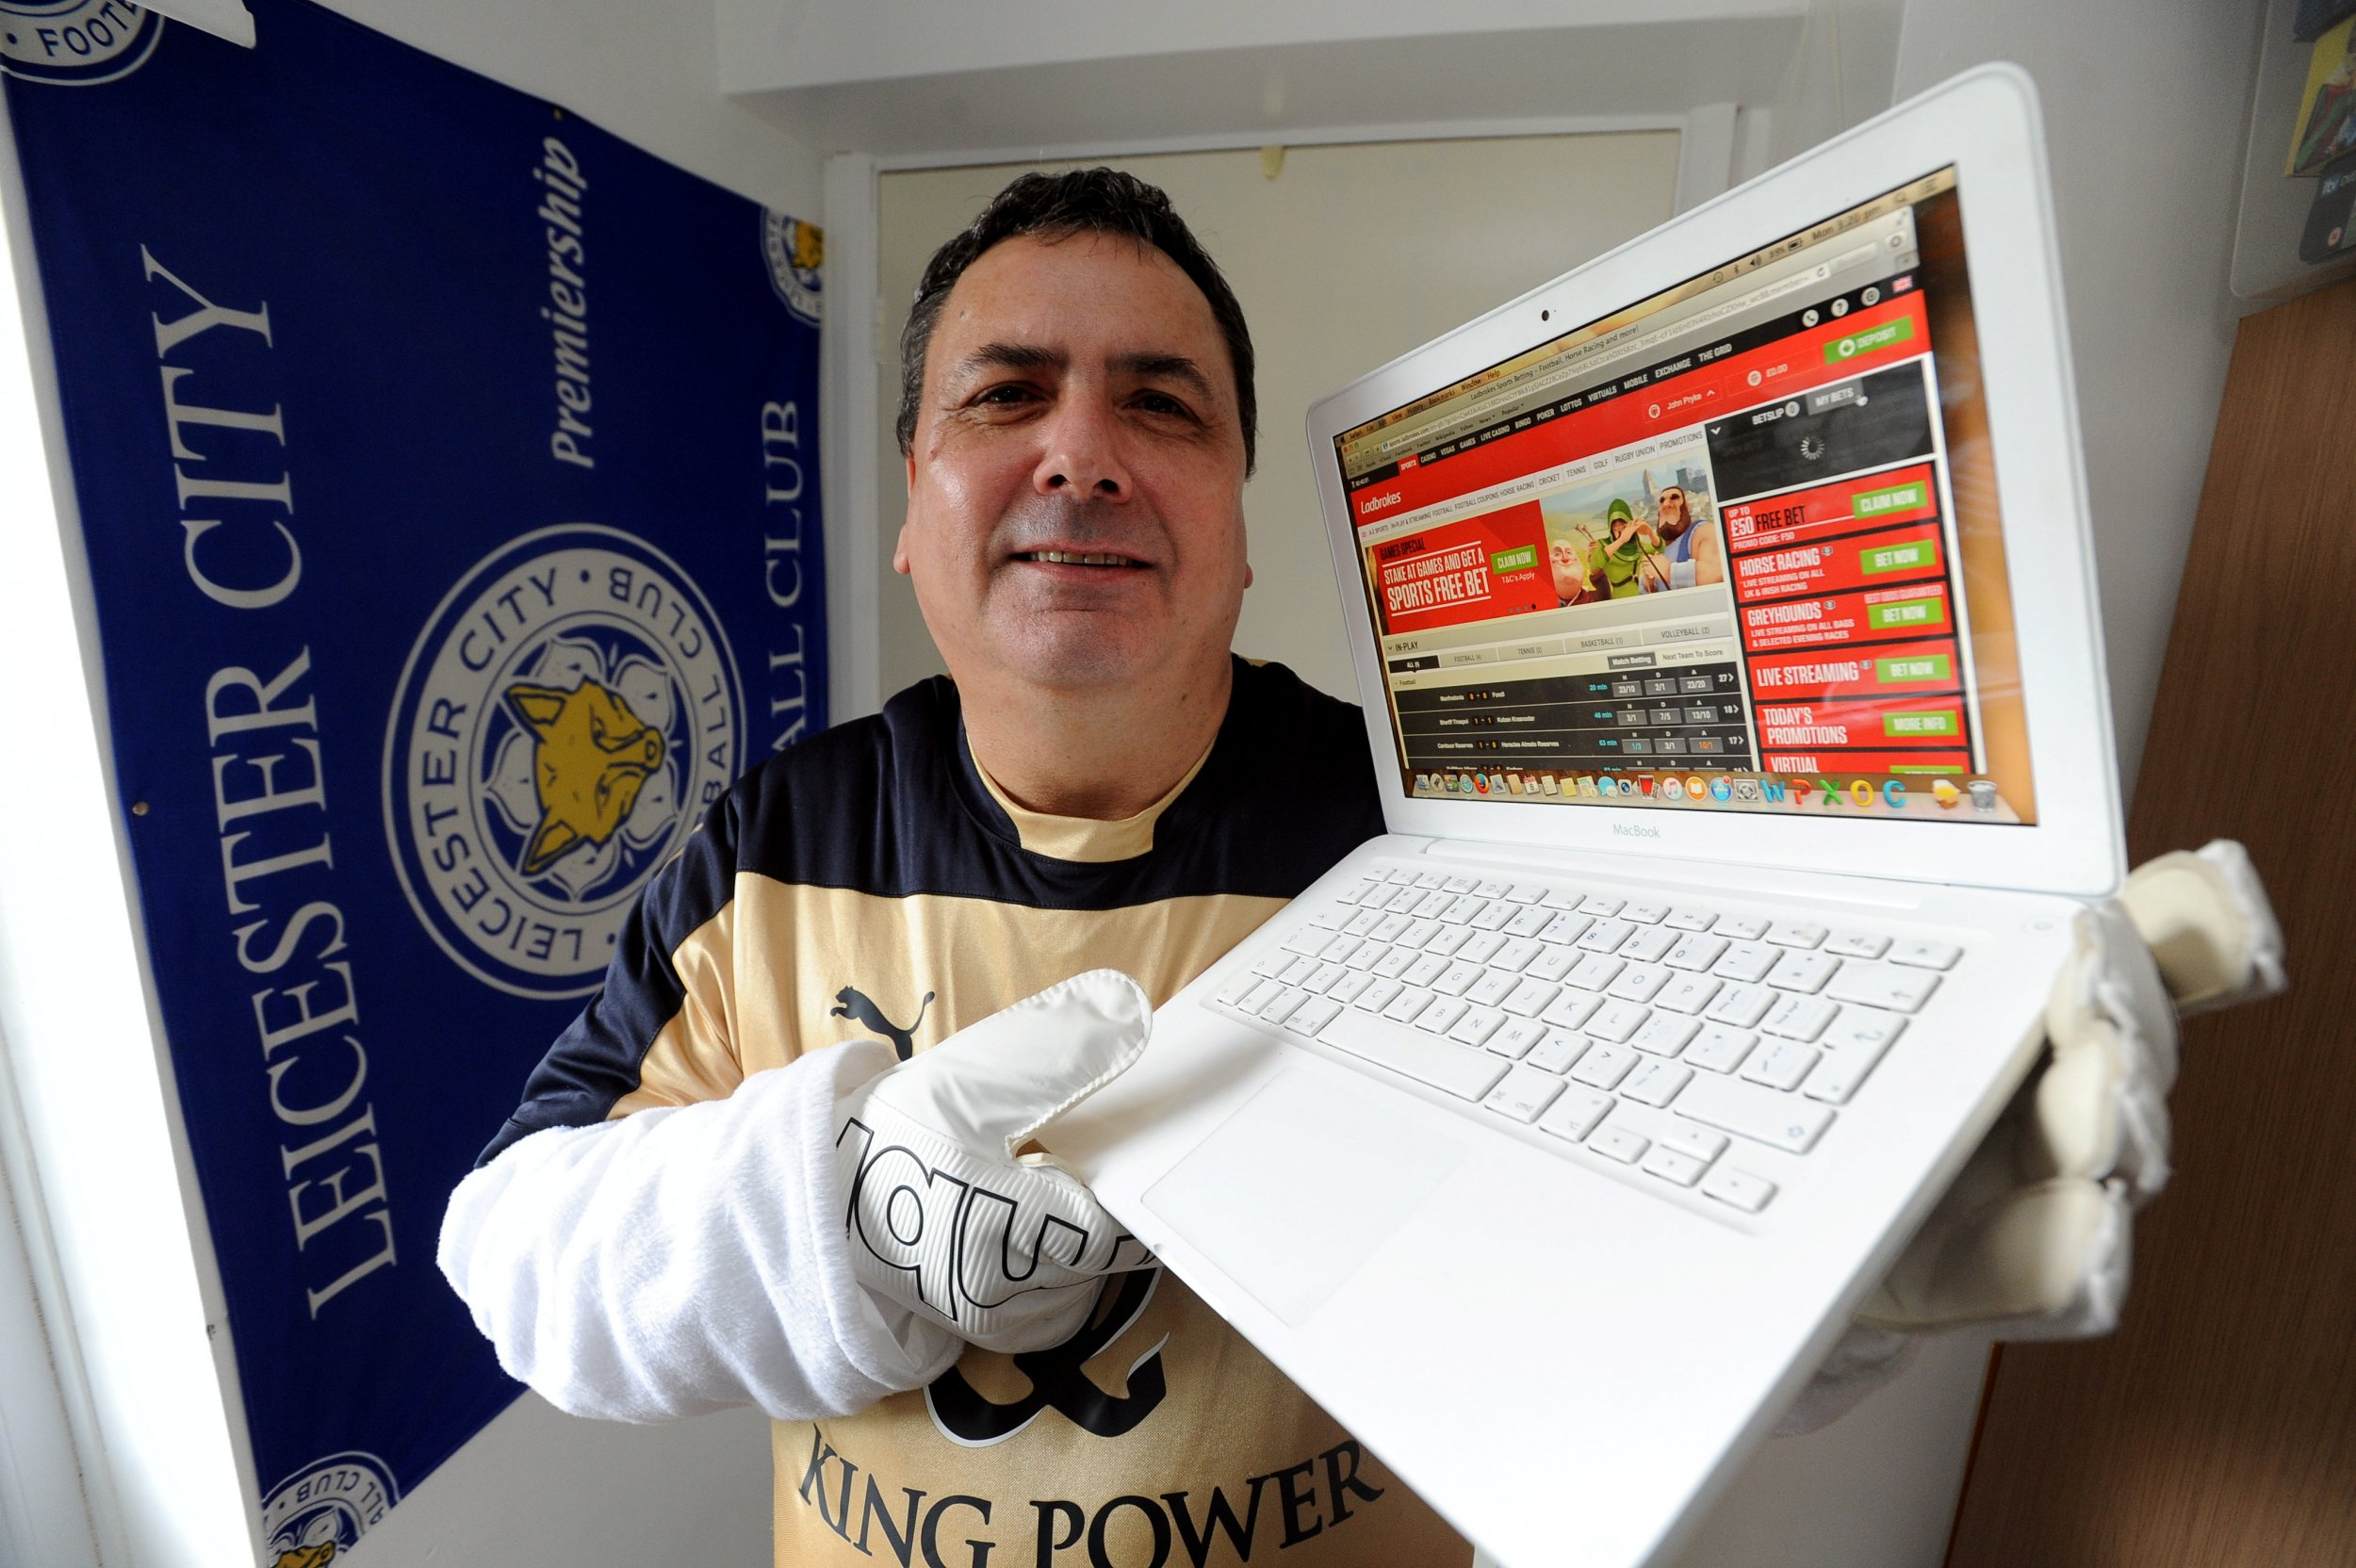 "Football fan John Pryke who stands to pocket over £104,000 if Leicester City win the Premier League - Pictured is John with the Ladbrokes website displaying his bet. See NTI story NTIFAN. Nervous Leicester City fan John Pryke stands to pocket £100,000 if the blues win the league - after taking out an unlikely £20 bet on Claudio Ranieri's men to win the title. John, 59, of Leicester Forest East, spotted the 5,000-1 bet at the start of the season. ""The odds were so good, I just thought: 'Well, that's not bad ñ I fancy that' so I had a bet on them,"" he said. ""I remember when Greece won the European Championships in 2004, as late entrants. No-one fancied them. They were 500-1 to win it and I remember my son, Christopher, said to me: 'They'll win it, dad,' and I laughed at him. Lo and behold, they did. I didn't want to miss out like that again."